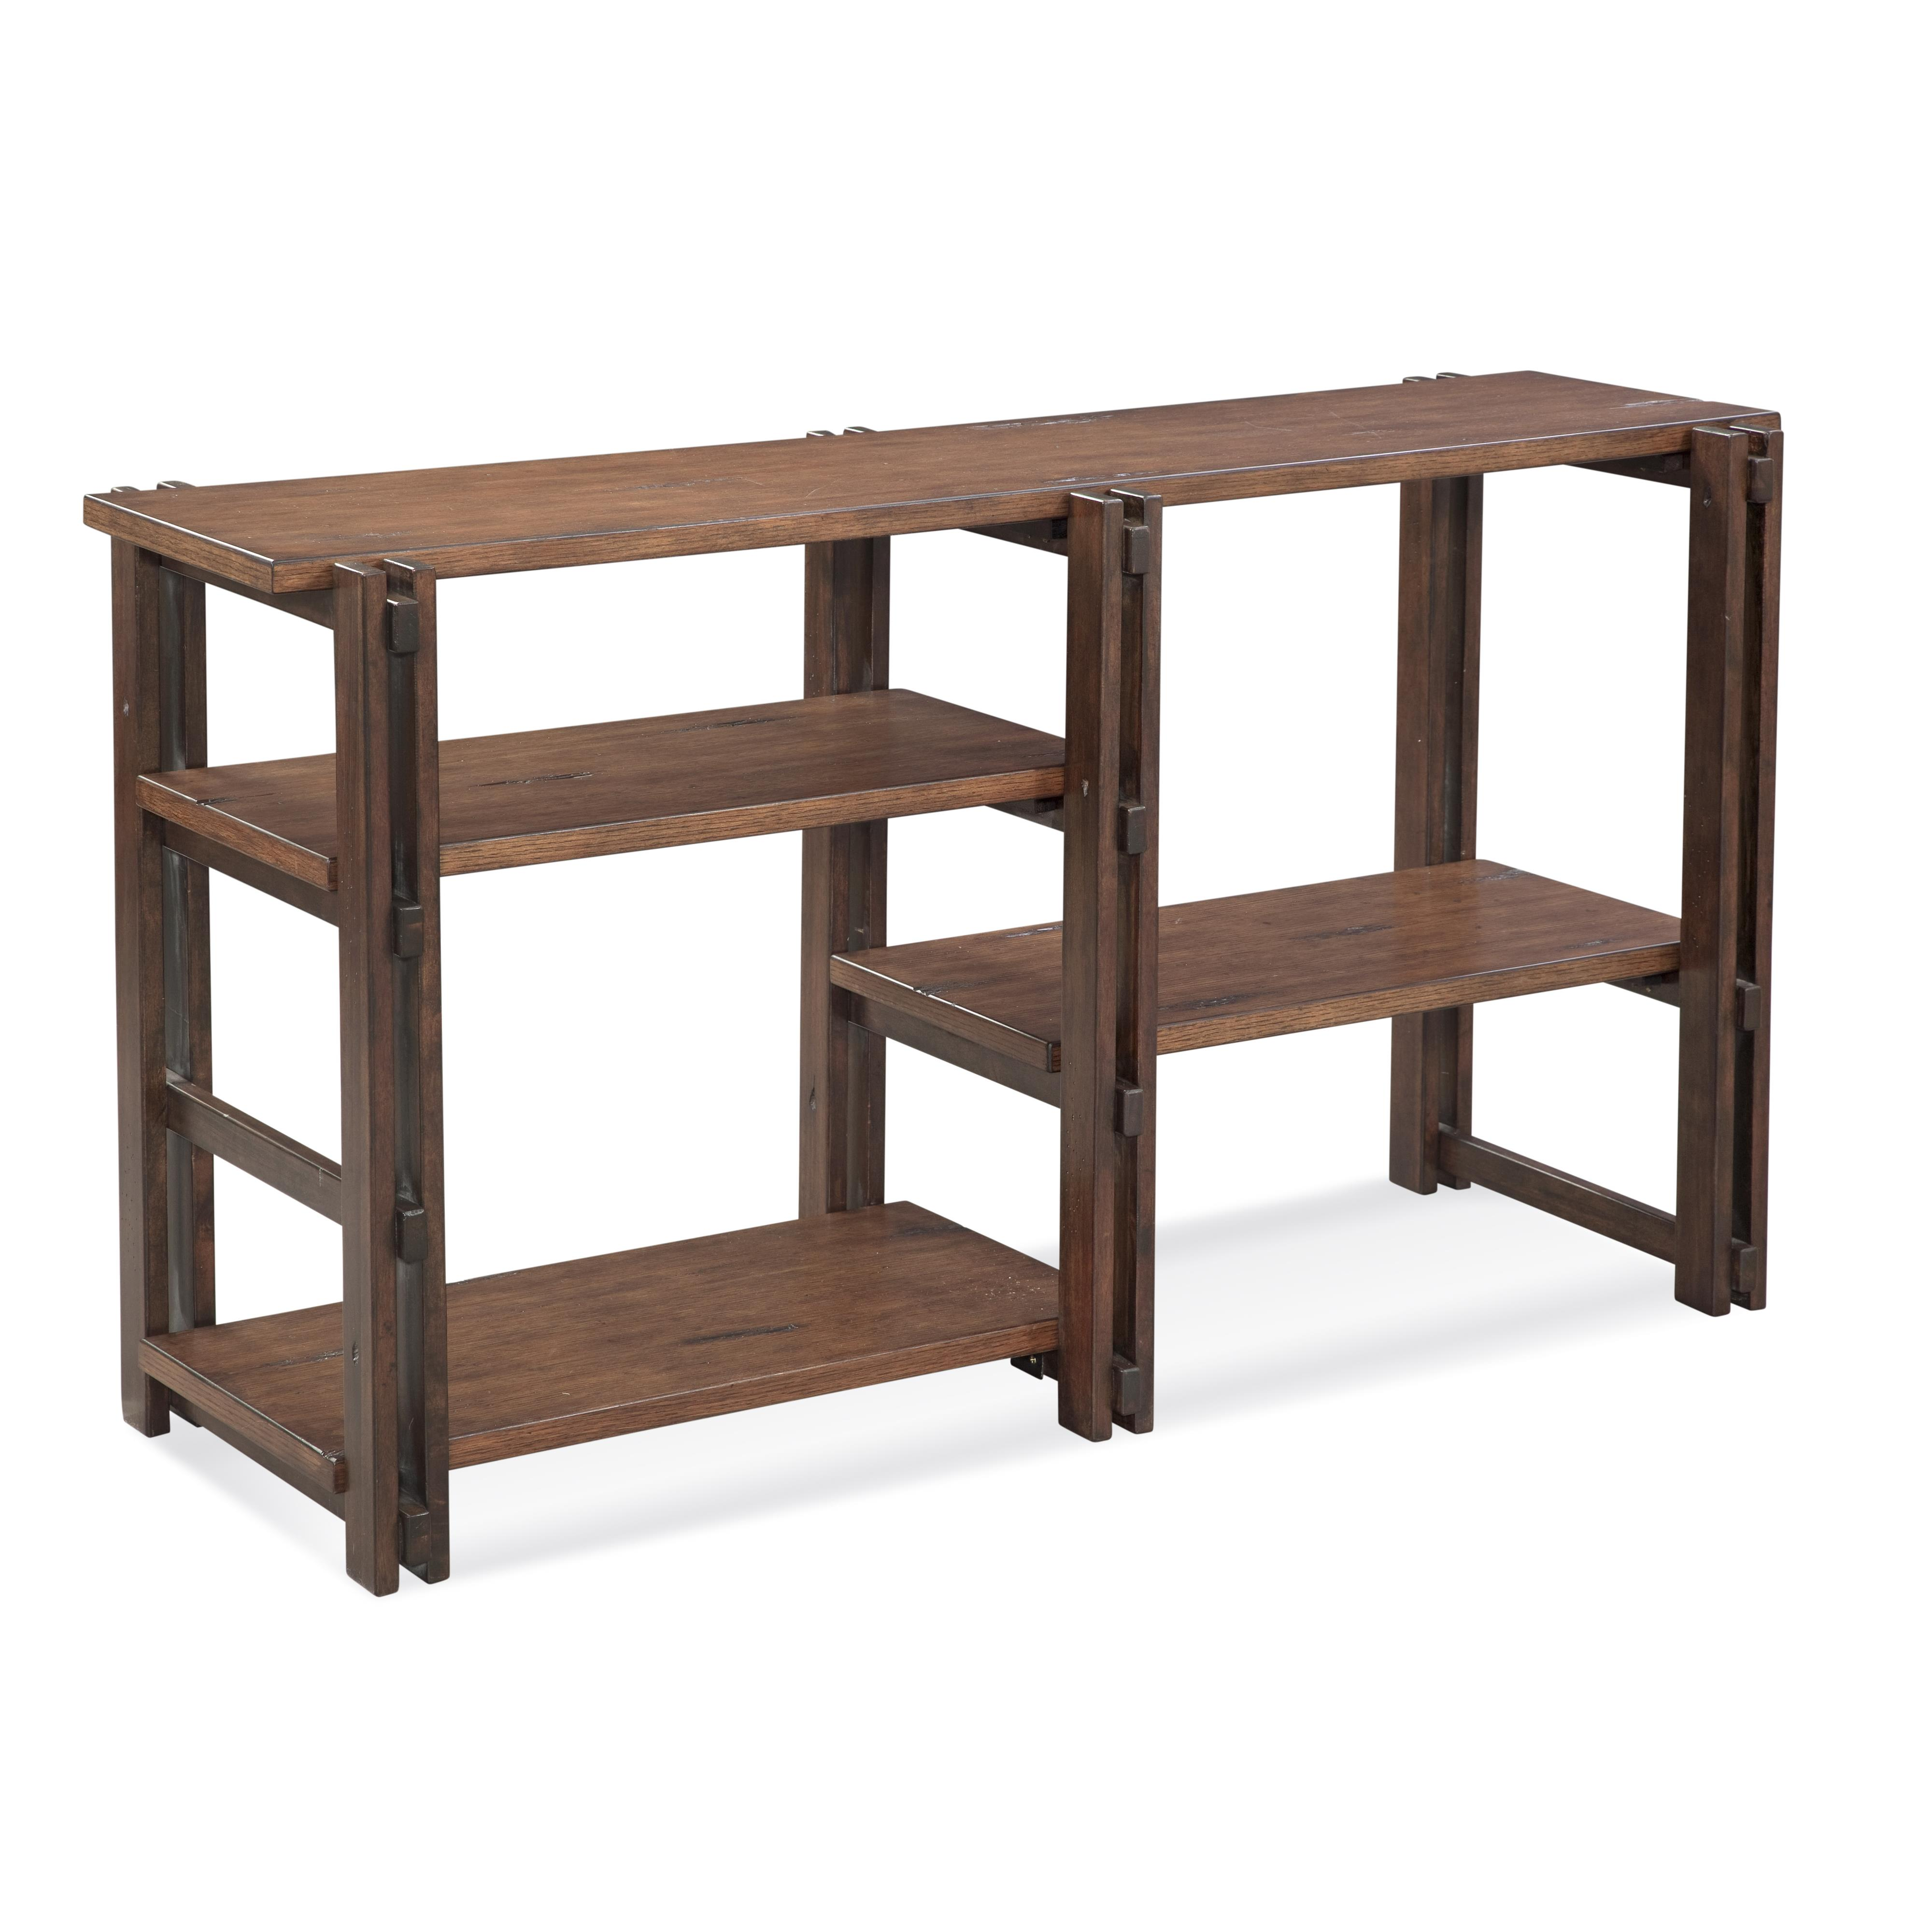 Home Accents Holbrook Console by Bassett Mirror at Bullard Furniture